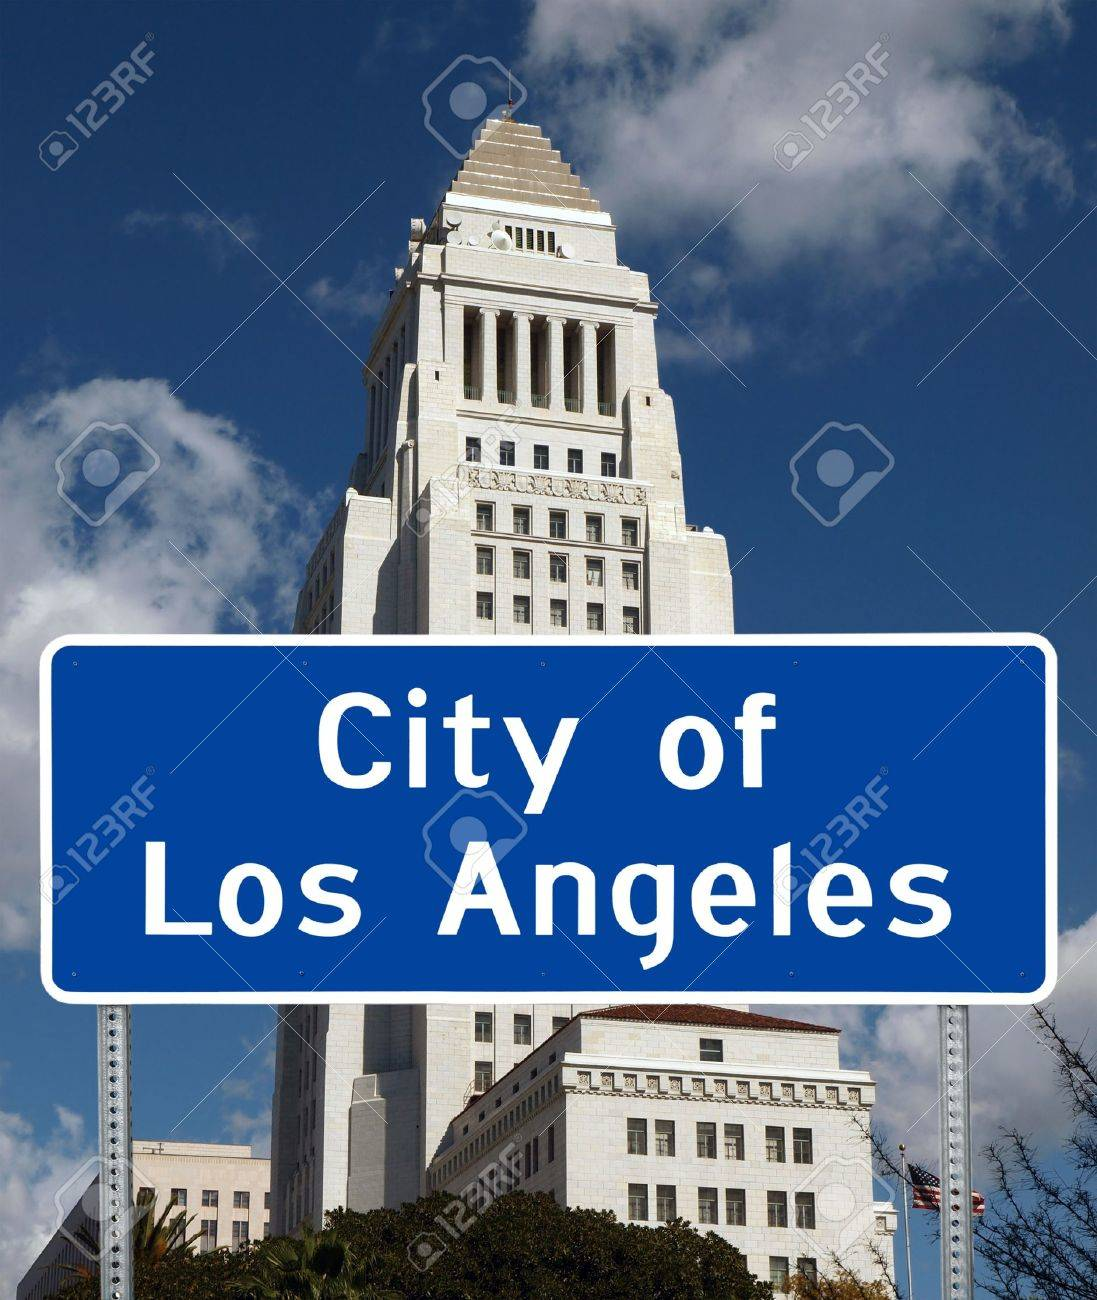 Los Angeles iconic City Hall tower with city limit sign foreground. Stock Photo - 9889065